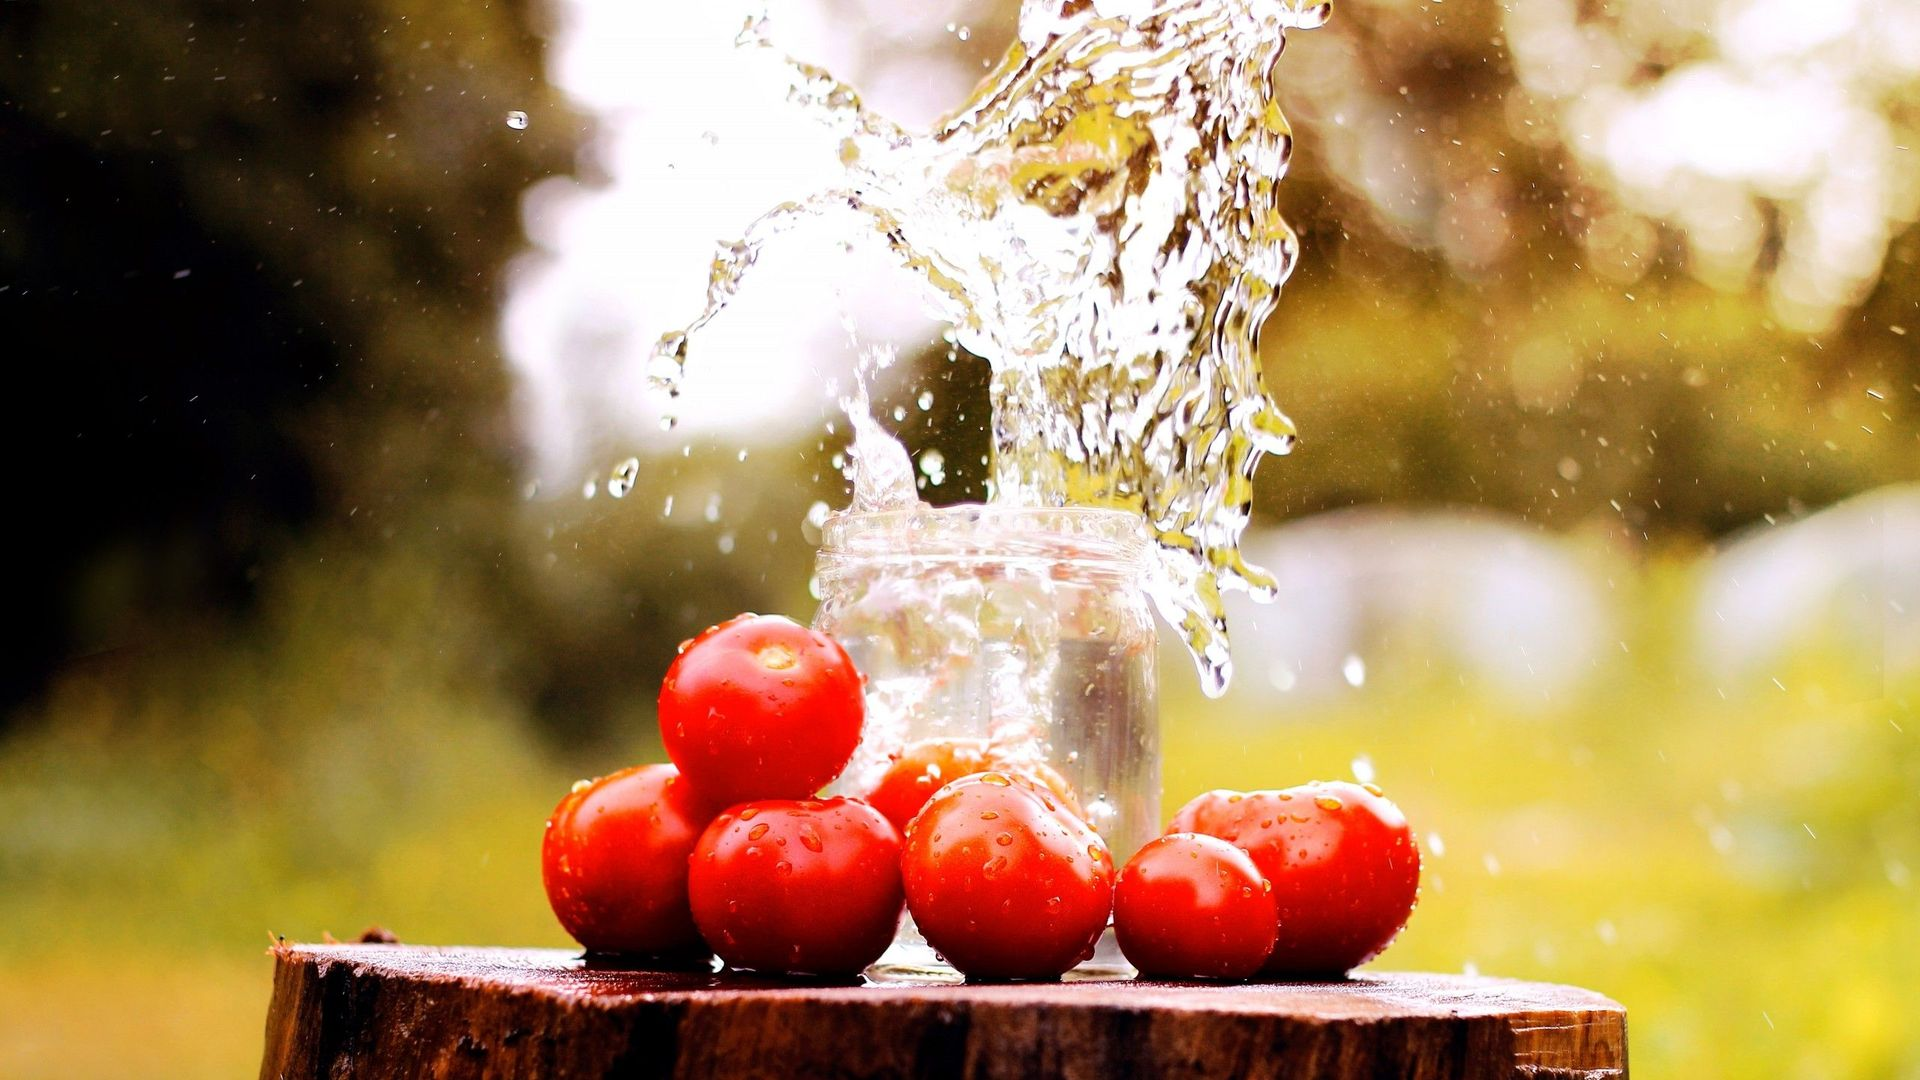 awesome tomatoes wallpaper 44463